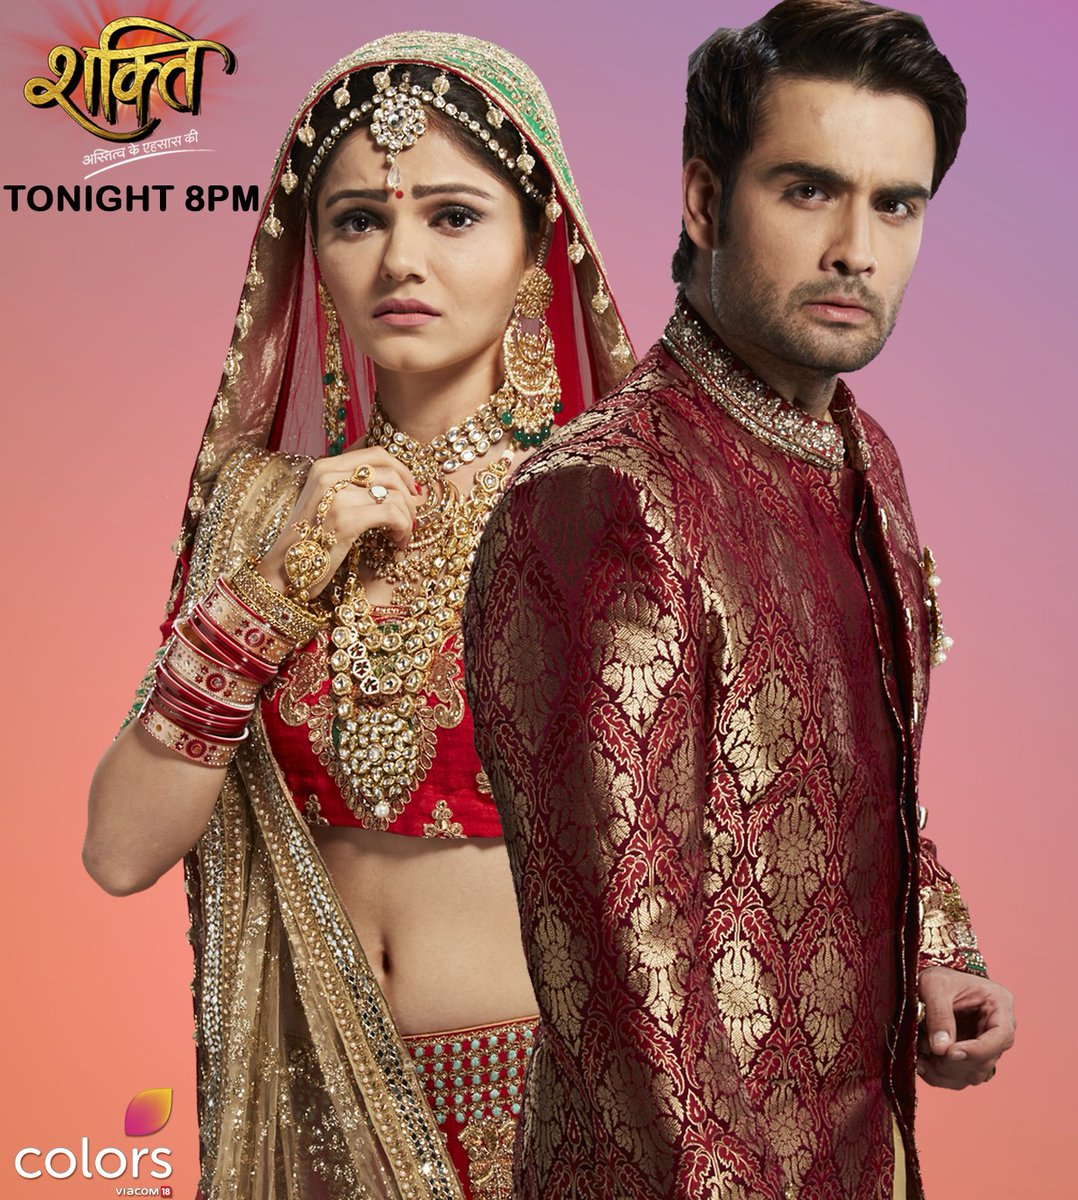 Shakti,Saumya,Harman,Soumya,Vivian Dsena,Rubina Diliak,pic,HD Photo,images,pictures,Colors